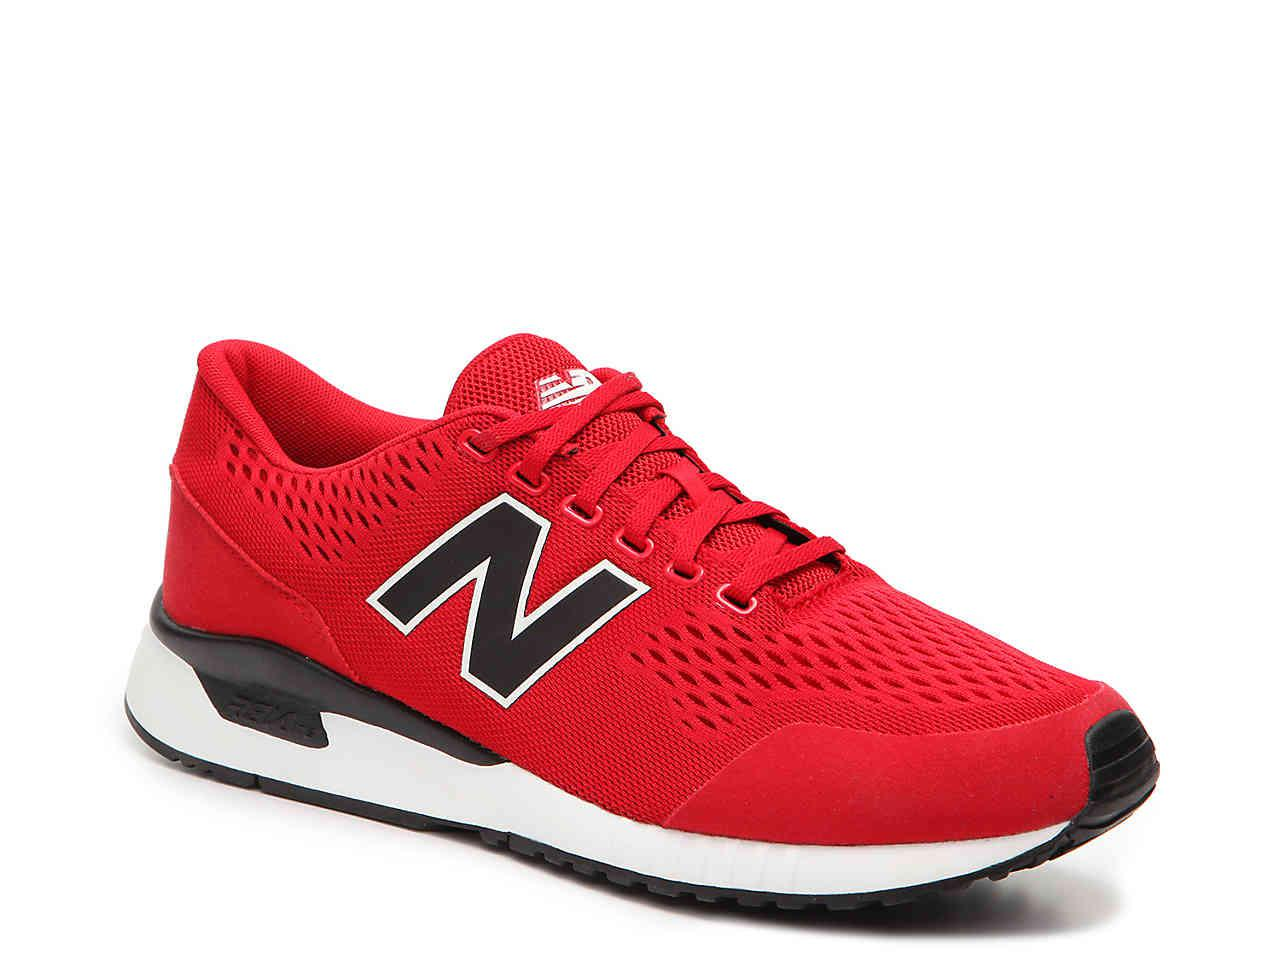 New Balance 005 Sneaker in Red for Men - Lyst